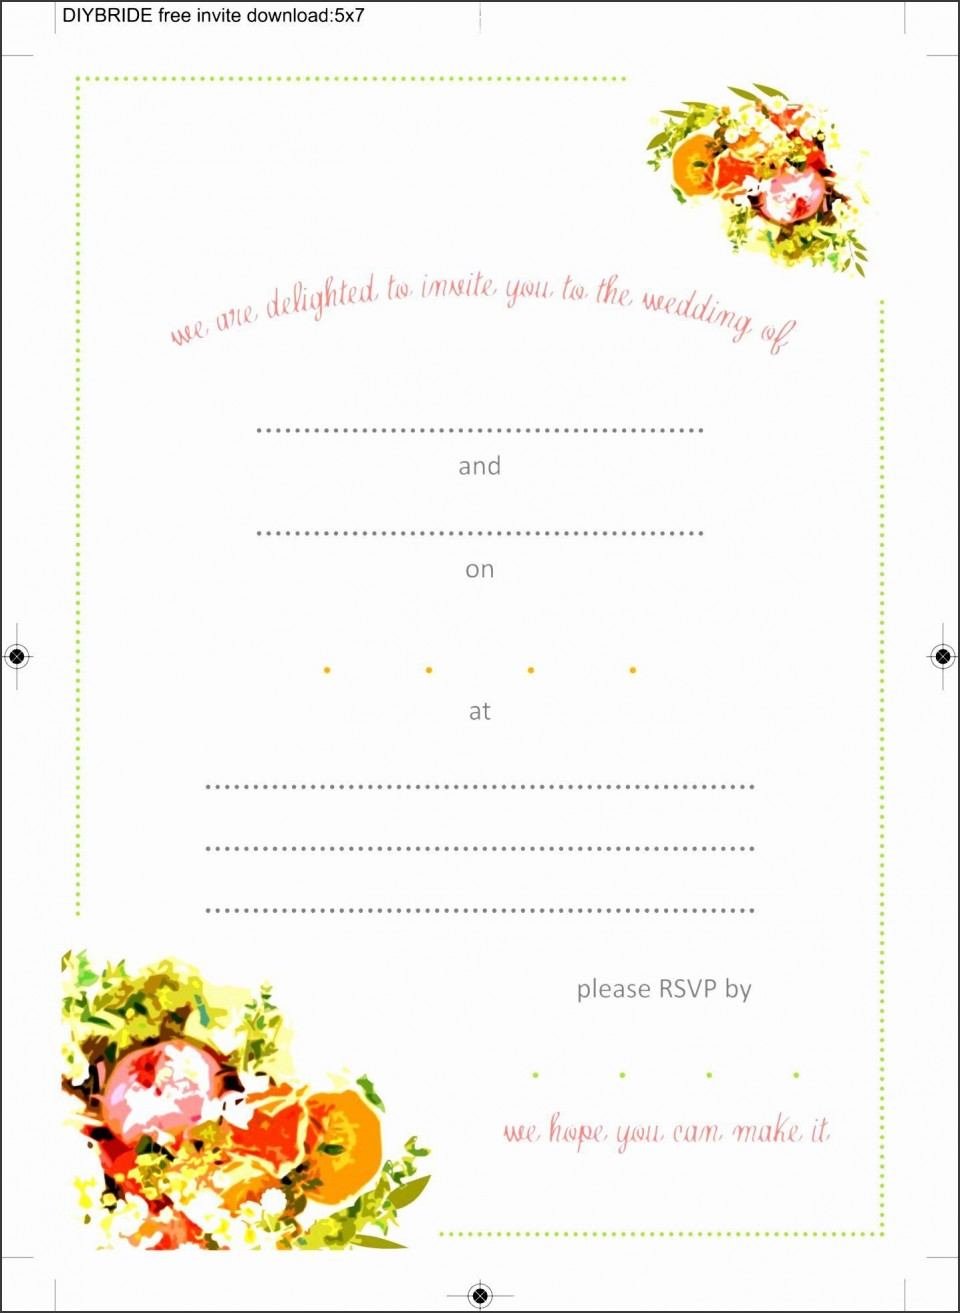 008 Beautiful Blank Birthday Invitation Template For Microsoft Word High Definition 960